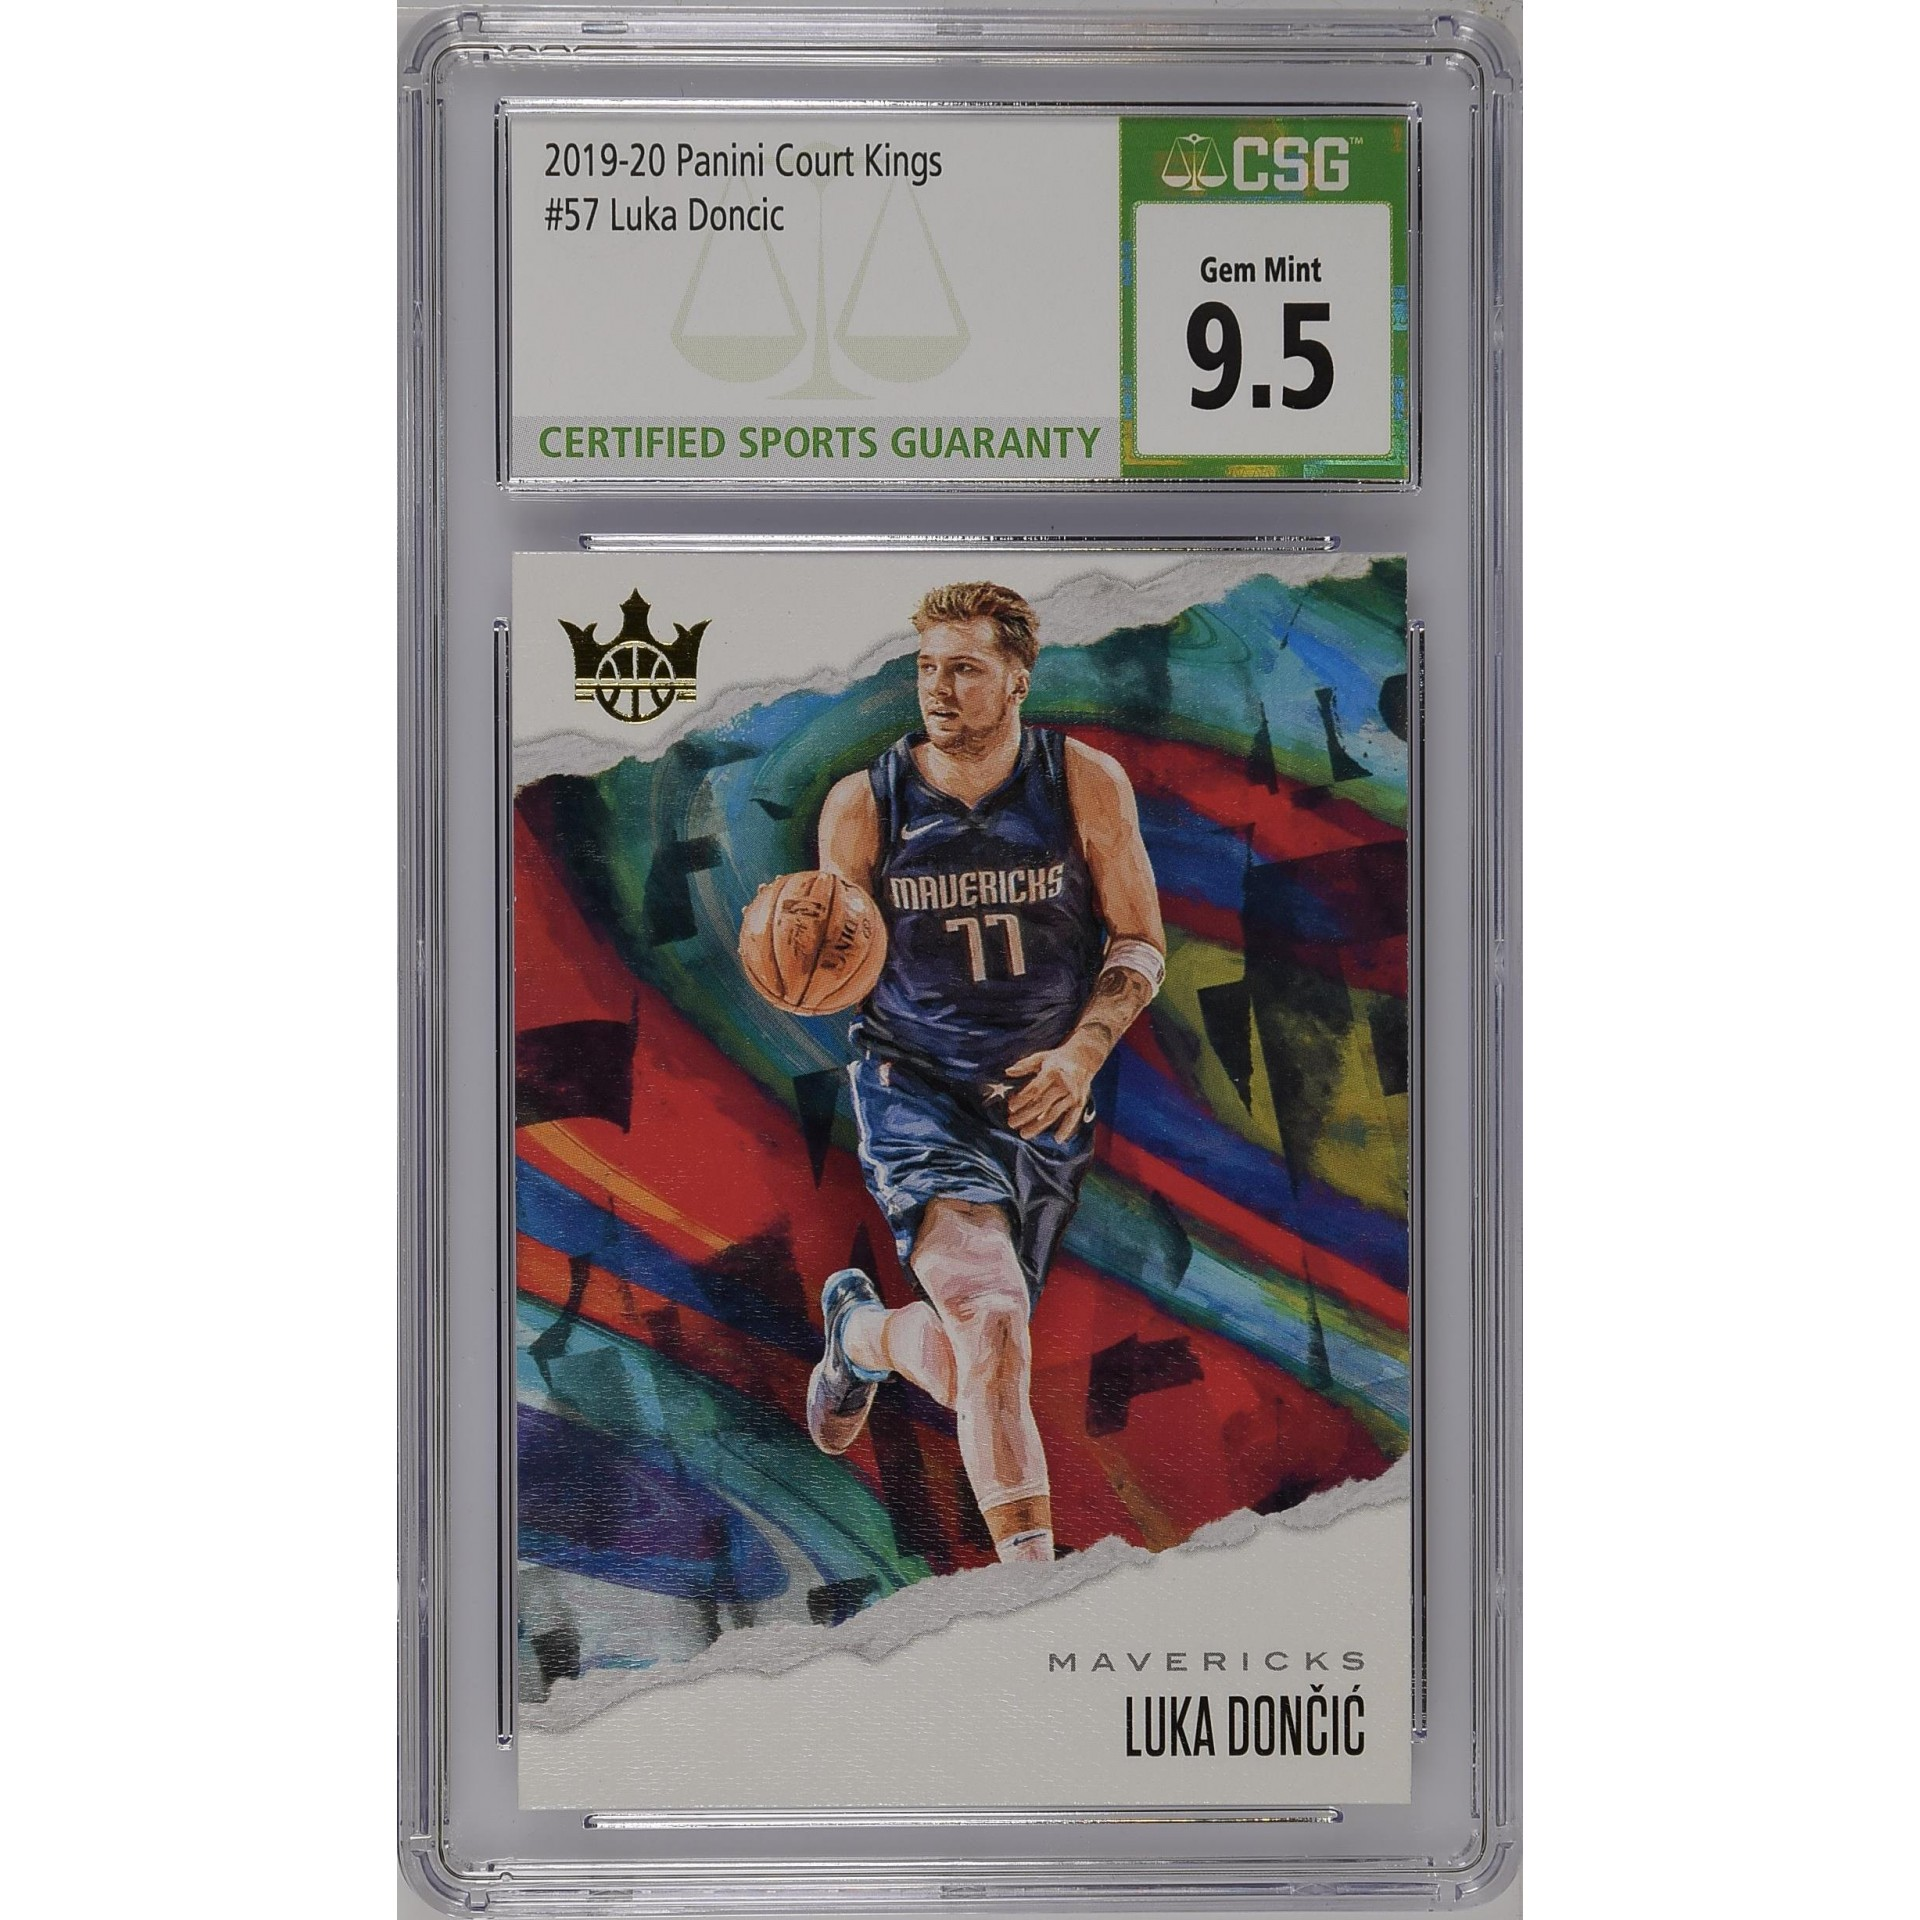 2019-20 Court Kings #57 Luka Doncic - CSG 9.5